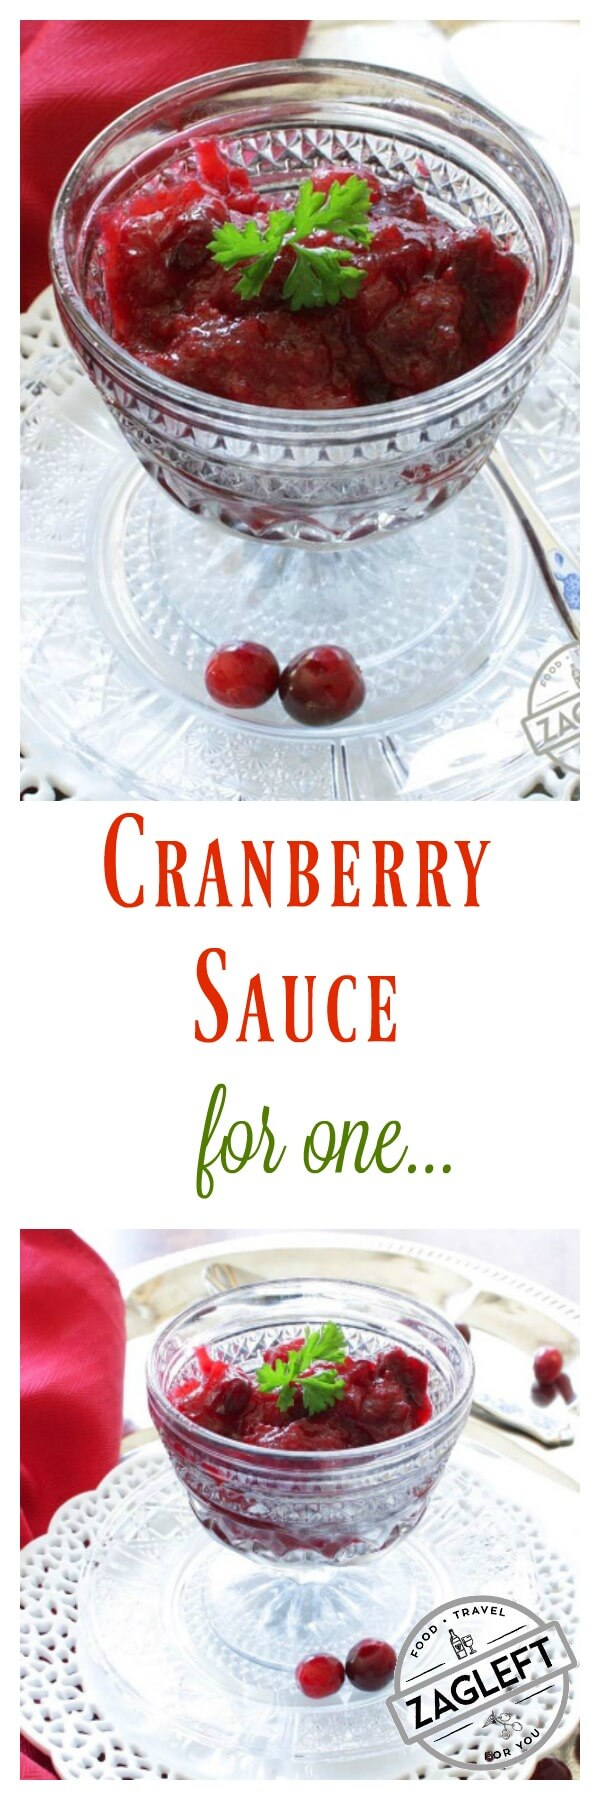 Homemade Cranberry Sauce for One made with a few simple ingredients. If you're dining solo this Thanksgiving, be sure to add this simple classic single serving side dish to your holiday menu | One Dish Kitchen